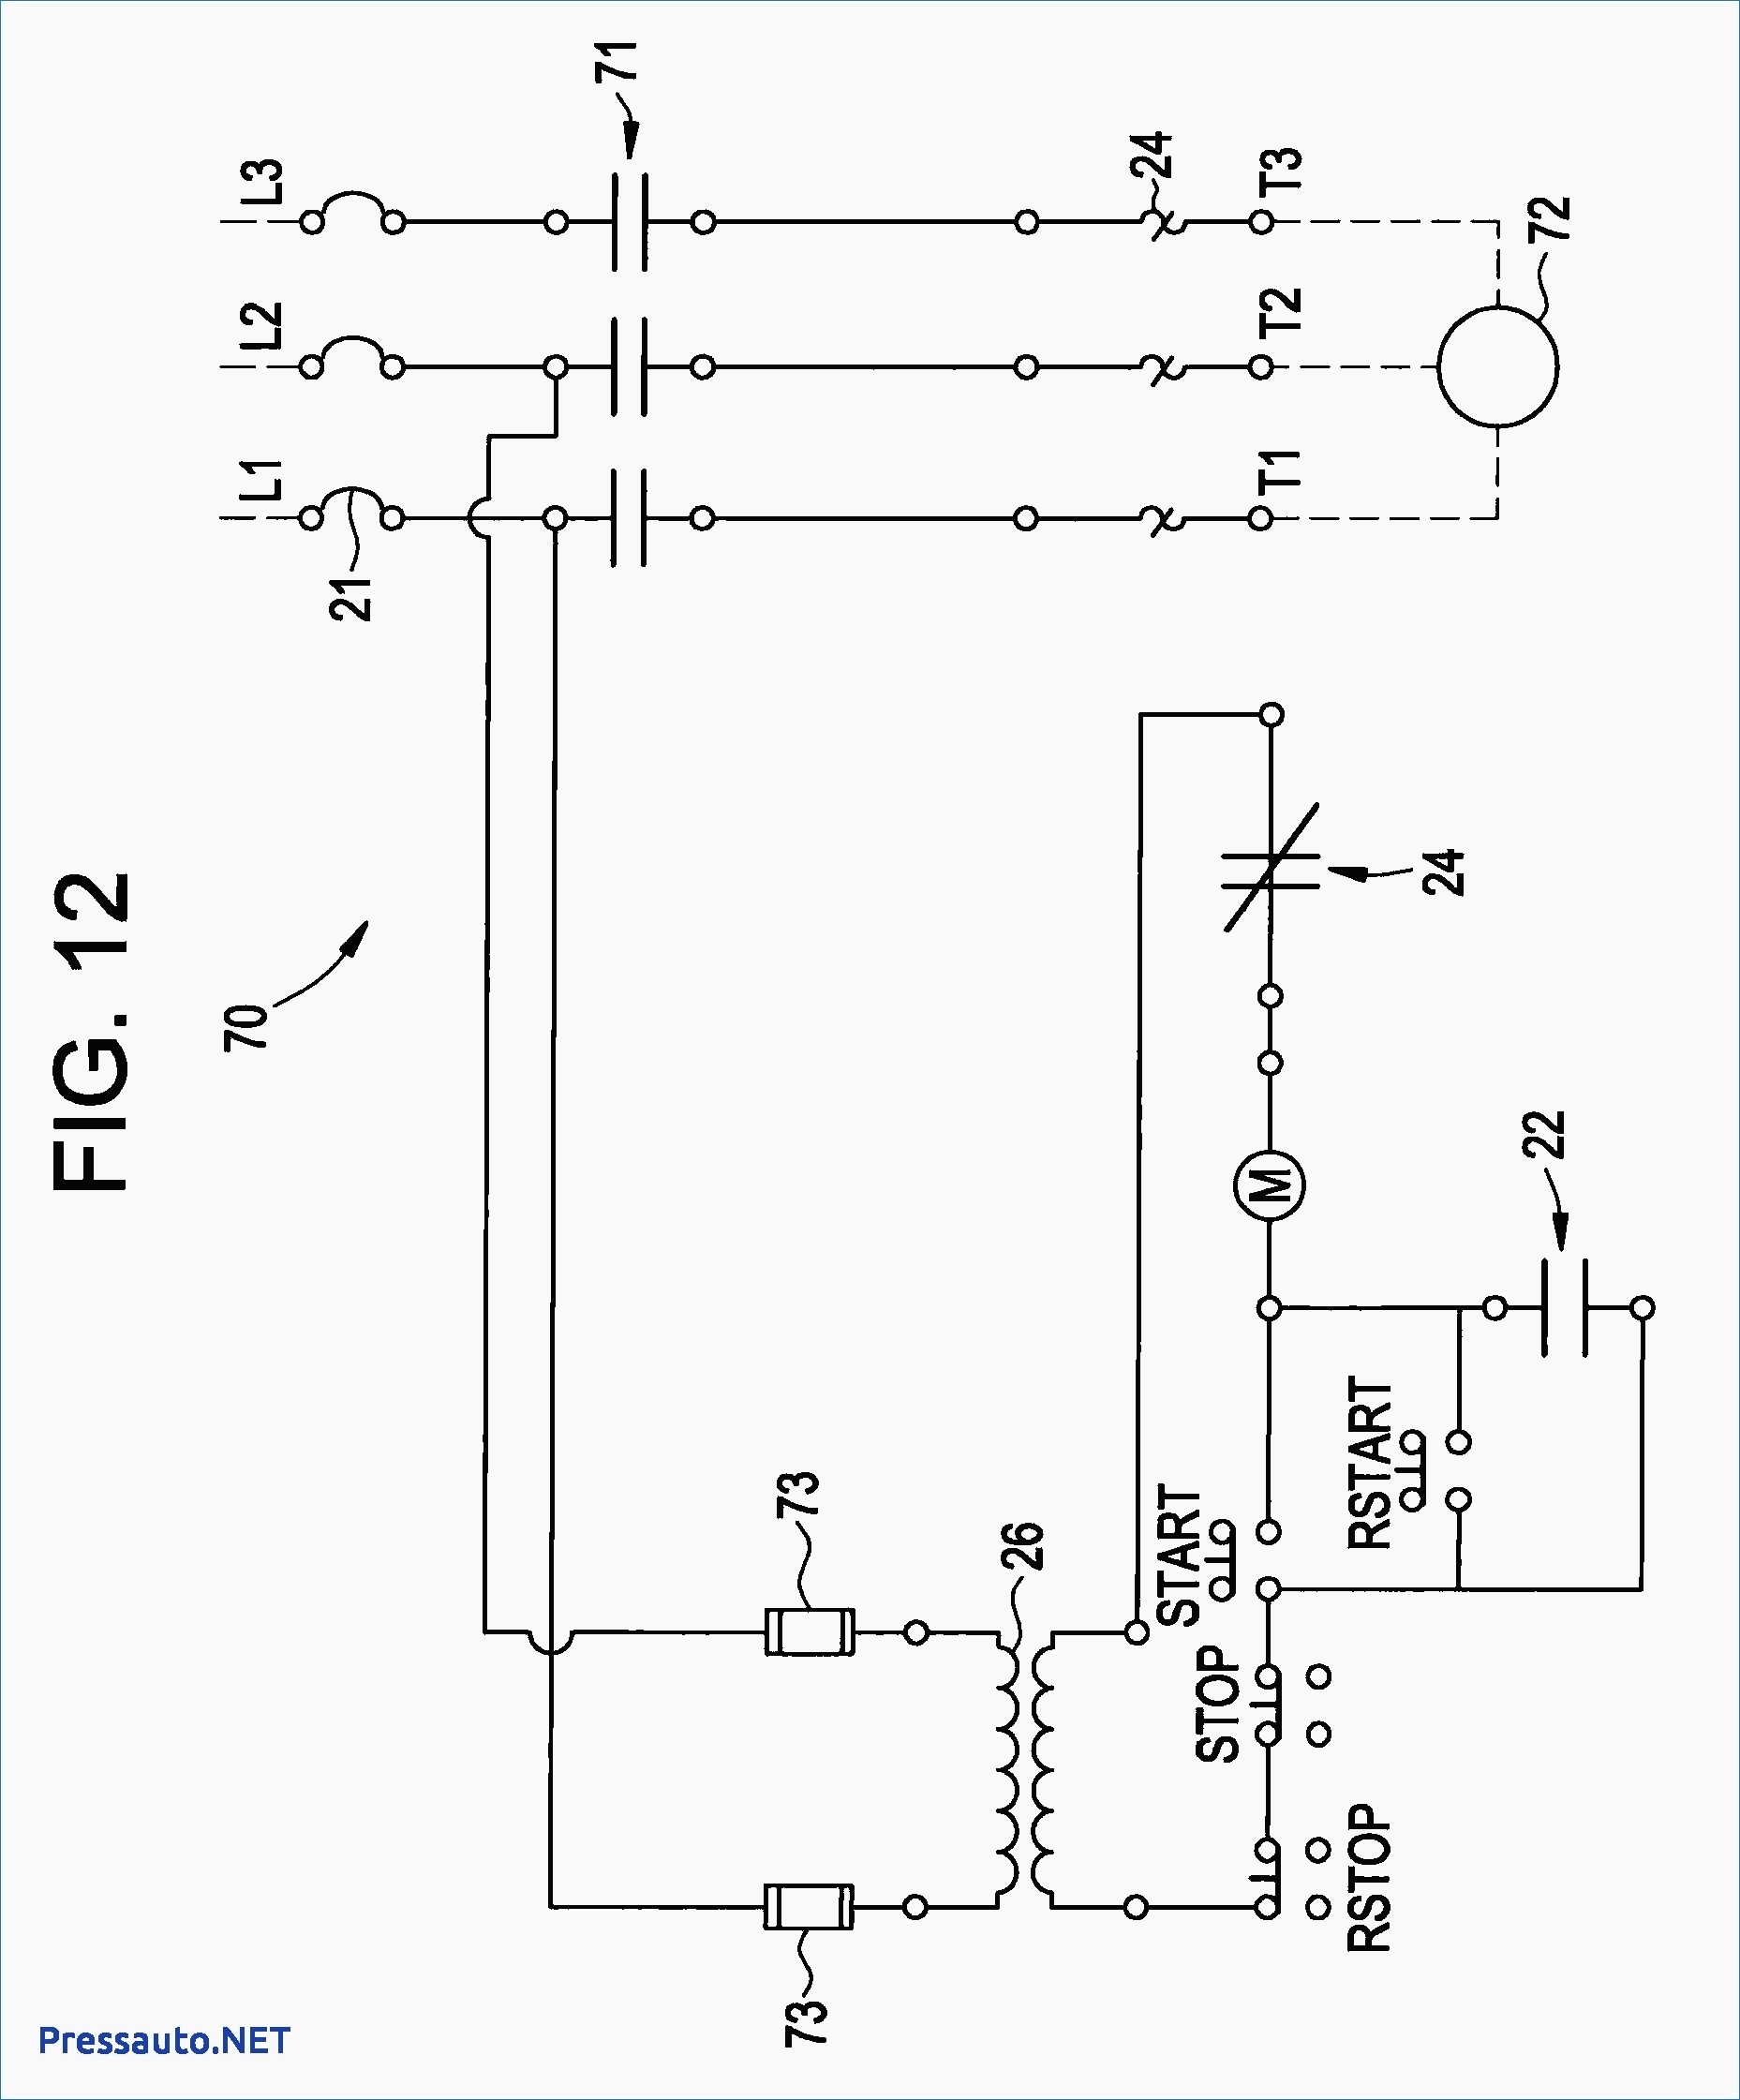 ecn0501aaa wiring diagram smart wiring diagrams u2022 rh emgsolutions co  Size 0 Combination Starter Eaton Combination